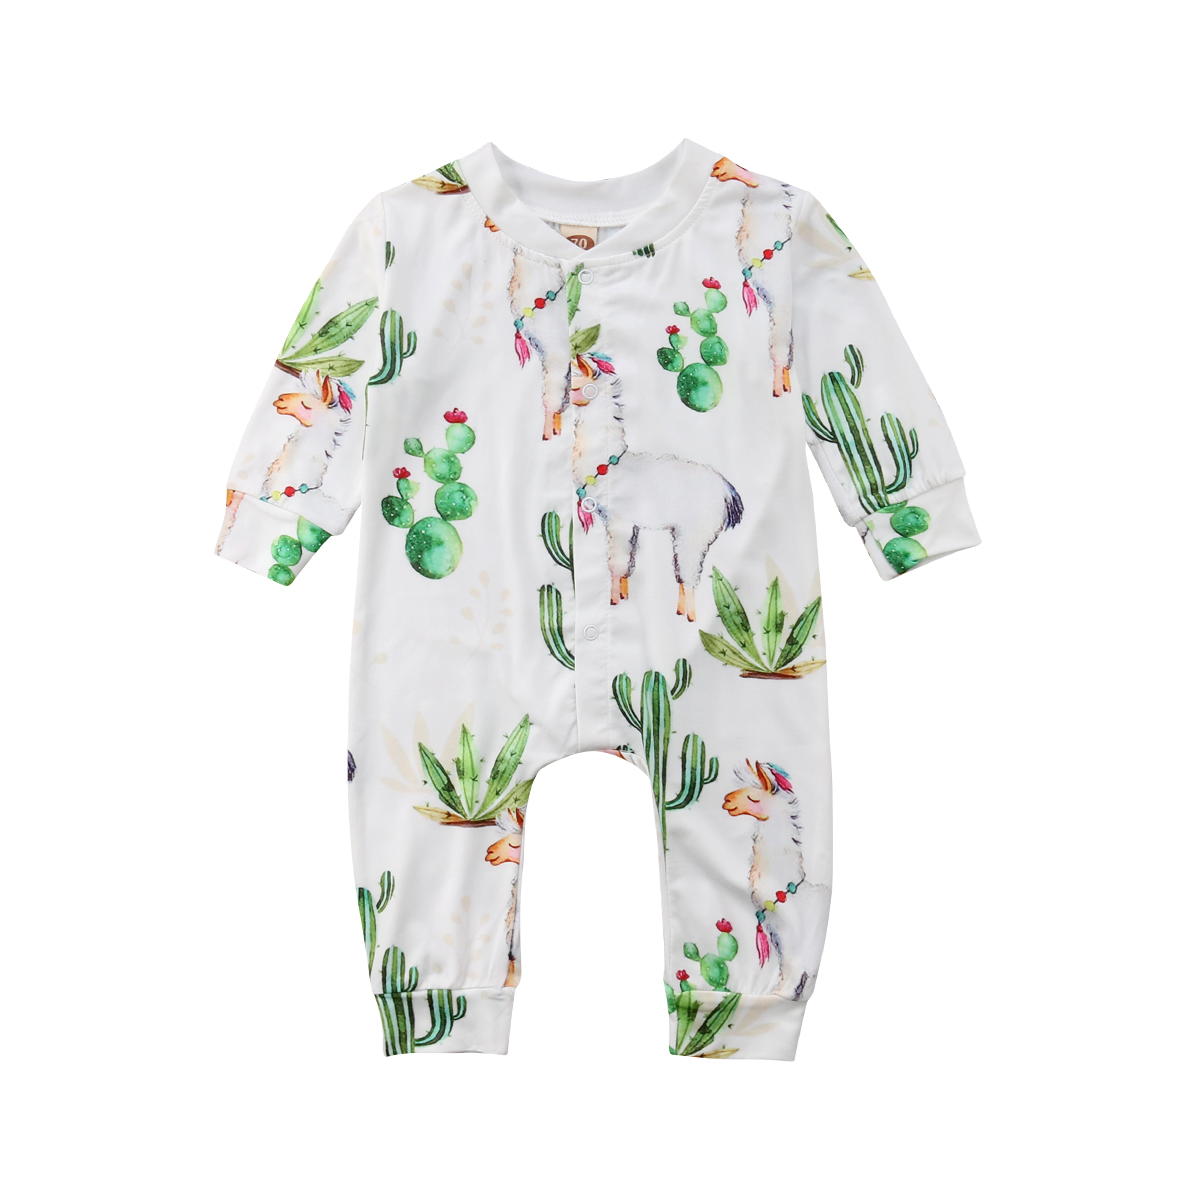 Toddler Cactus Kids Baby Boy Girls Alpaca   Romper   Jumpsuit Pants Clothes Outfits